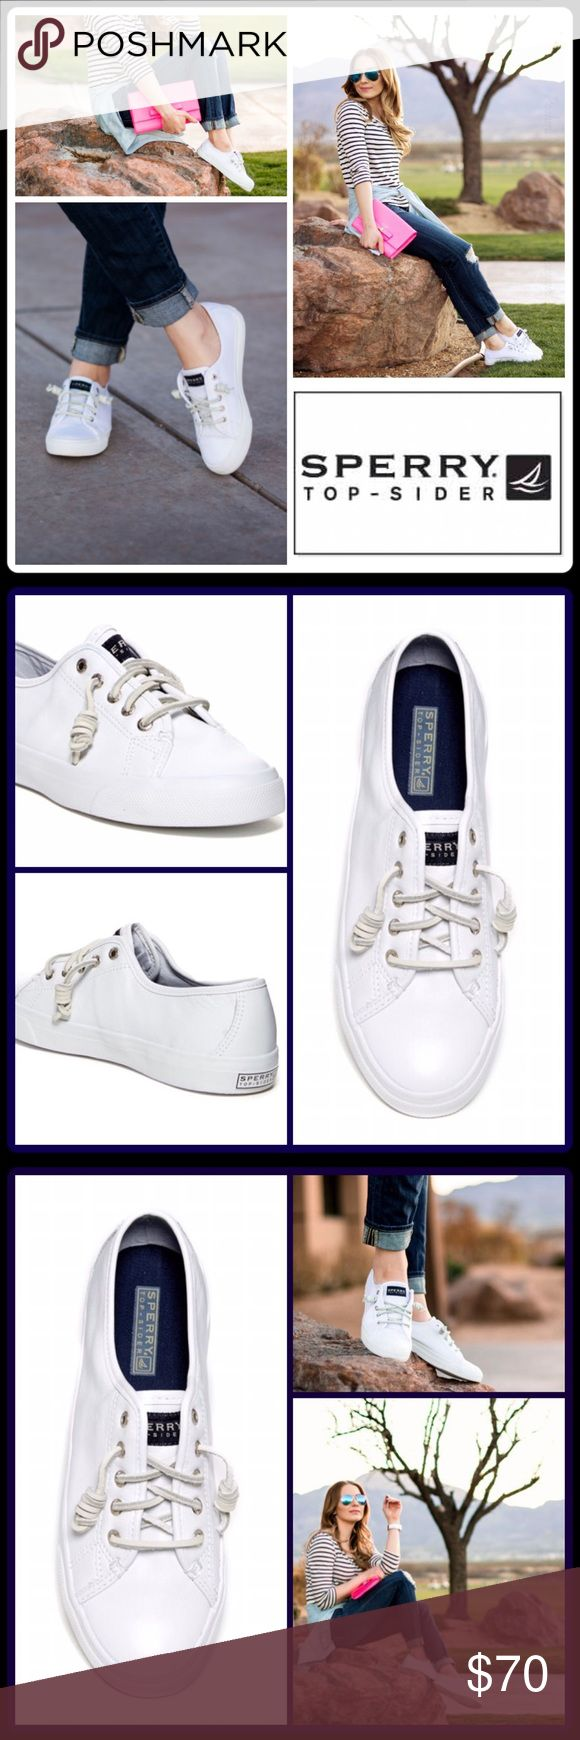 """💠JUST IN💠 30% BUNDLE SALE 💠 SEACOAST SNEAKER Fun fact: Sperry invented the boat shoe in 1935! Same sailing sneaker that the US Navy chose because it """"sticks like barnacle.""""  -Sizing: True to size -Round bumper toe - Lace-up detail - Hidden inside goring - Leather construction - Topstitched detail - Slip-on  - Removable insole - Grip sole  🛍 2+ BUNDLE=SAVE  ‼️NO TRADES  💯 Brand Items Authentic   ✈️ Ship Same Day--Purchase By 2PM PST  🖲 USE BLUE OFFER BUTTON TO NEGOTIATE   ✔️ Ask…"""